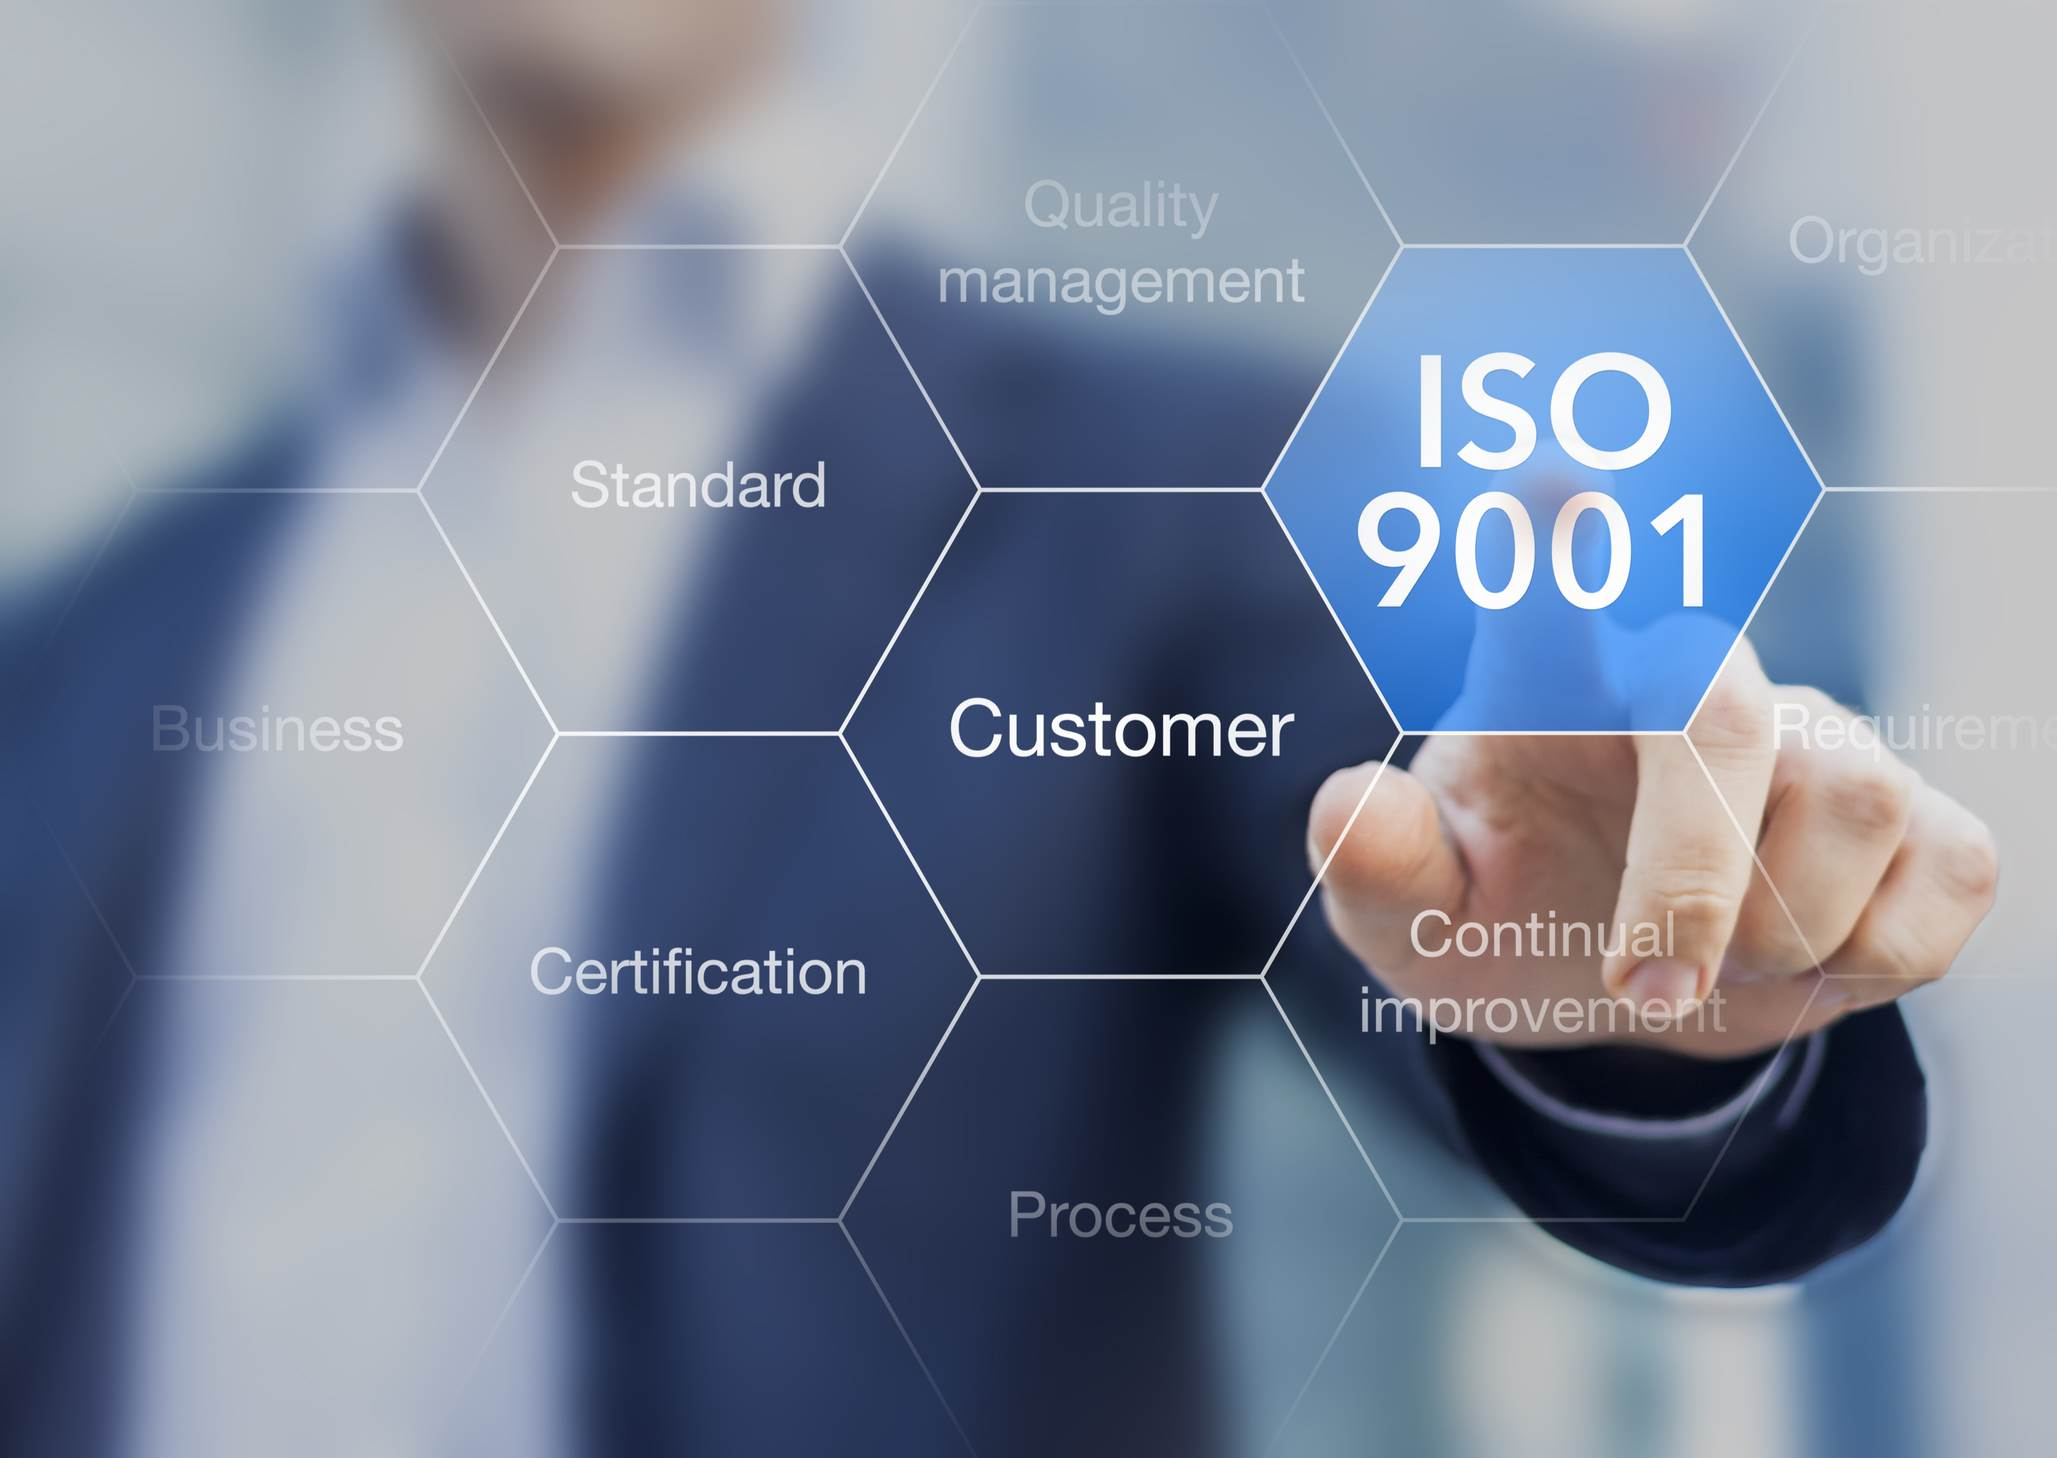 ISO Certification in Oman provides a major benefit in administration of every organization.